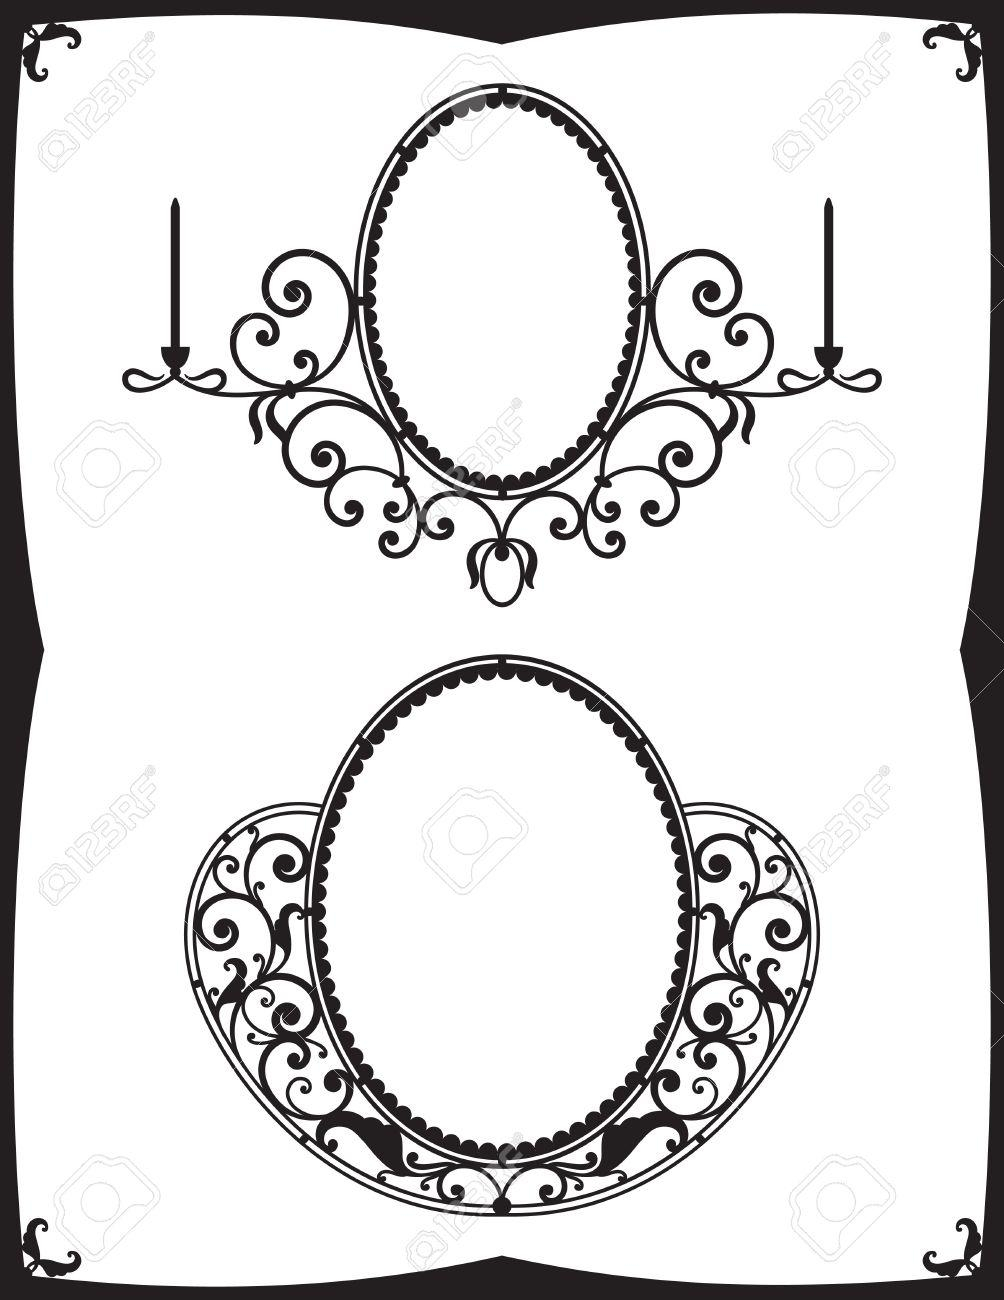 Two Wrought Iron Frames For Mirrors Royalty Free Cliparts, Vectors Within Black Wrought Iron Mirrors (View 10 of 20)